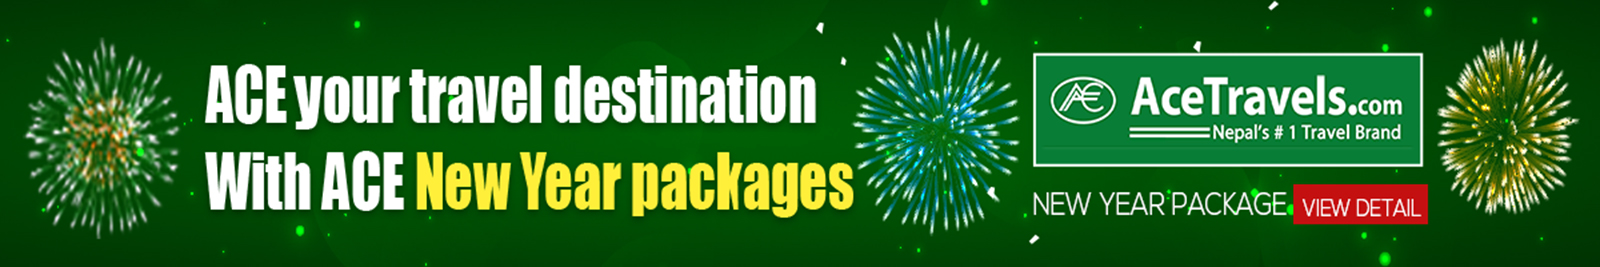 new-year-package